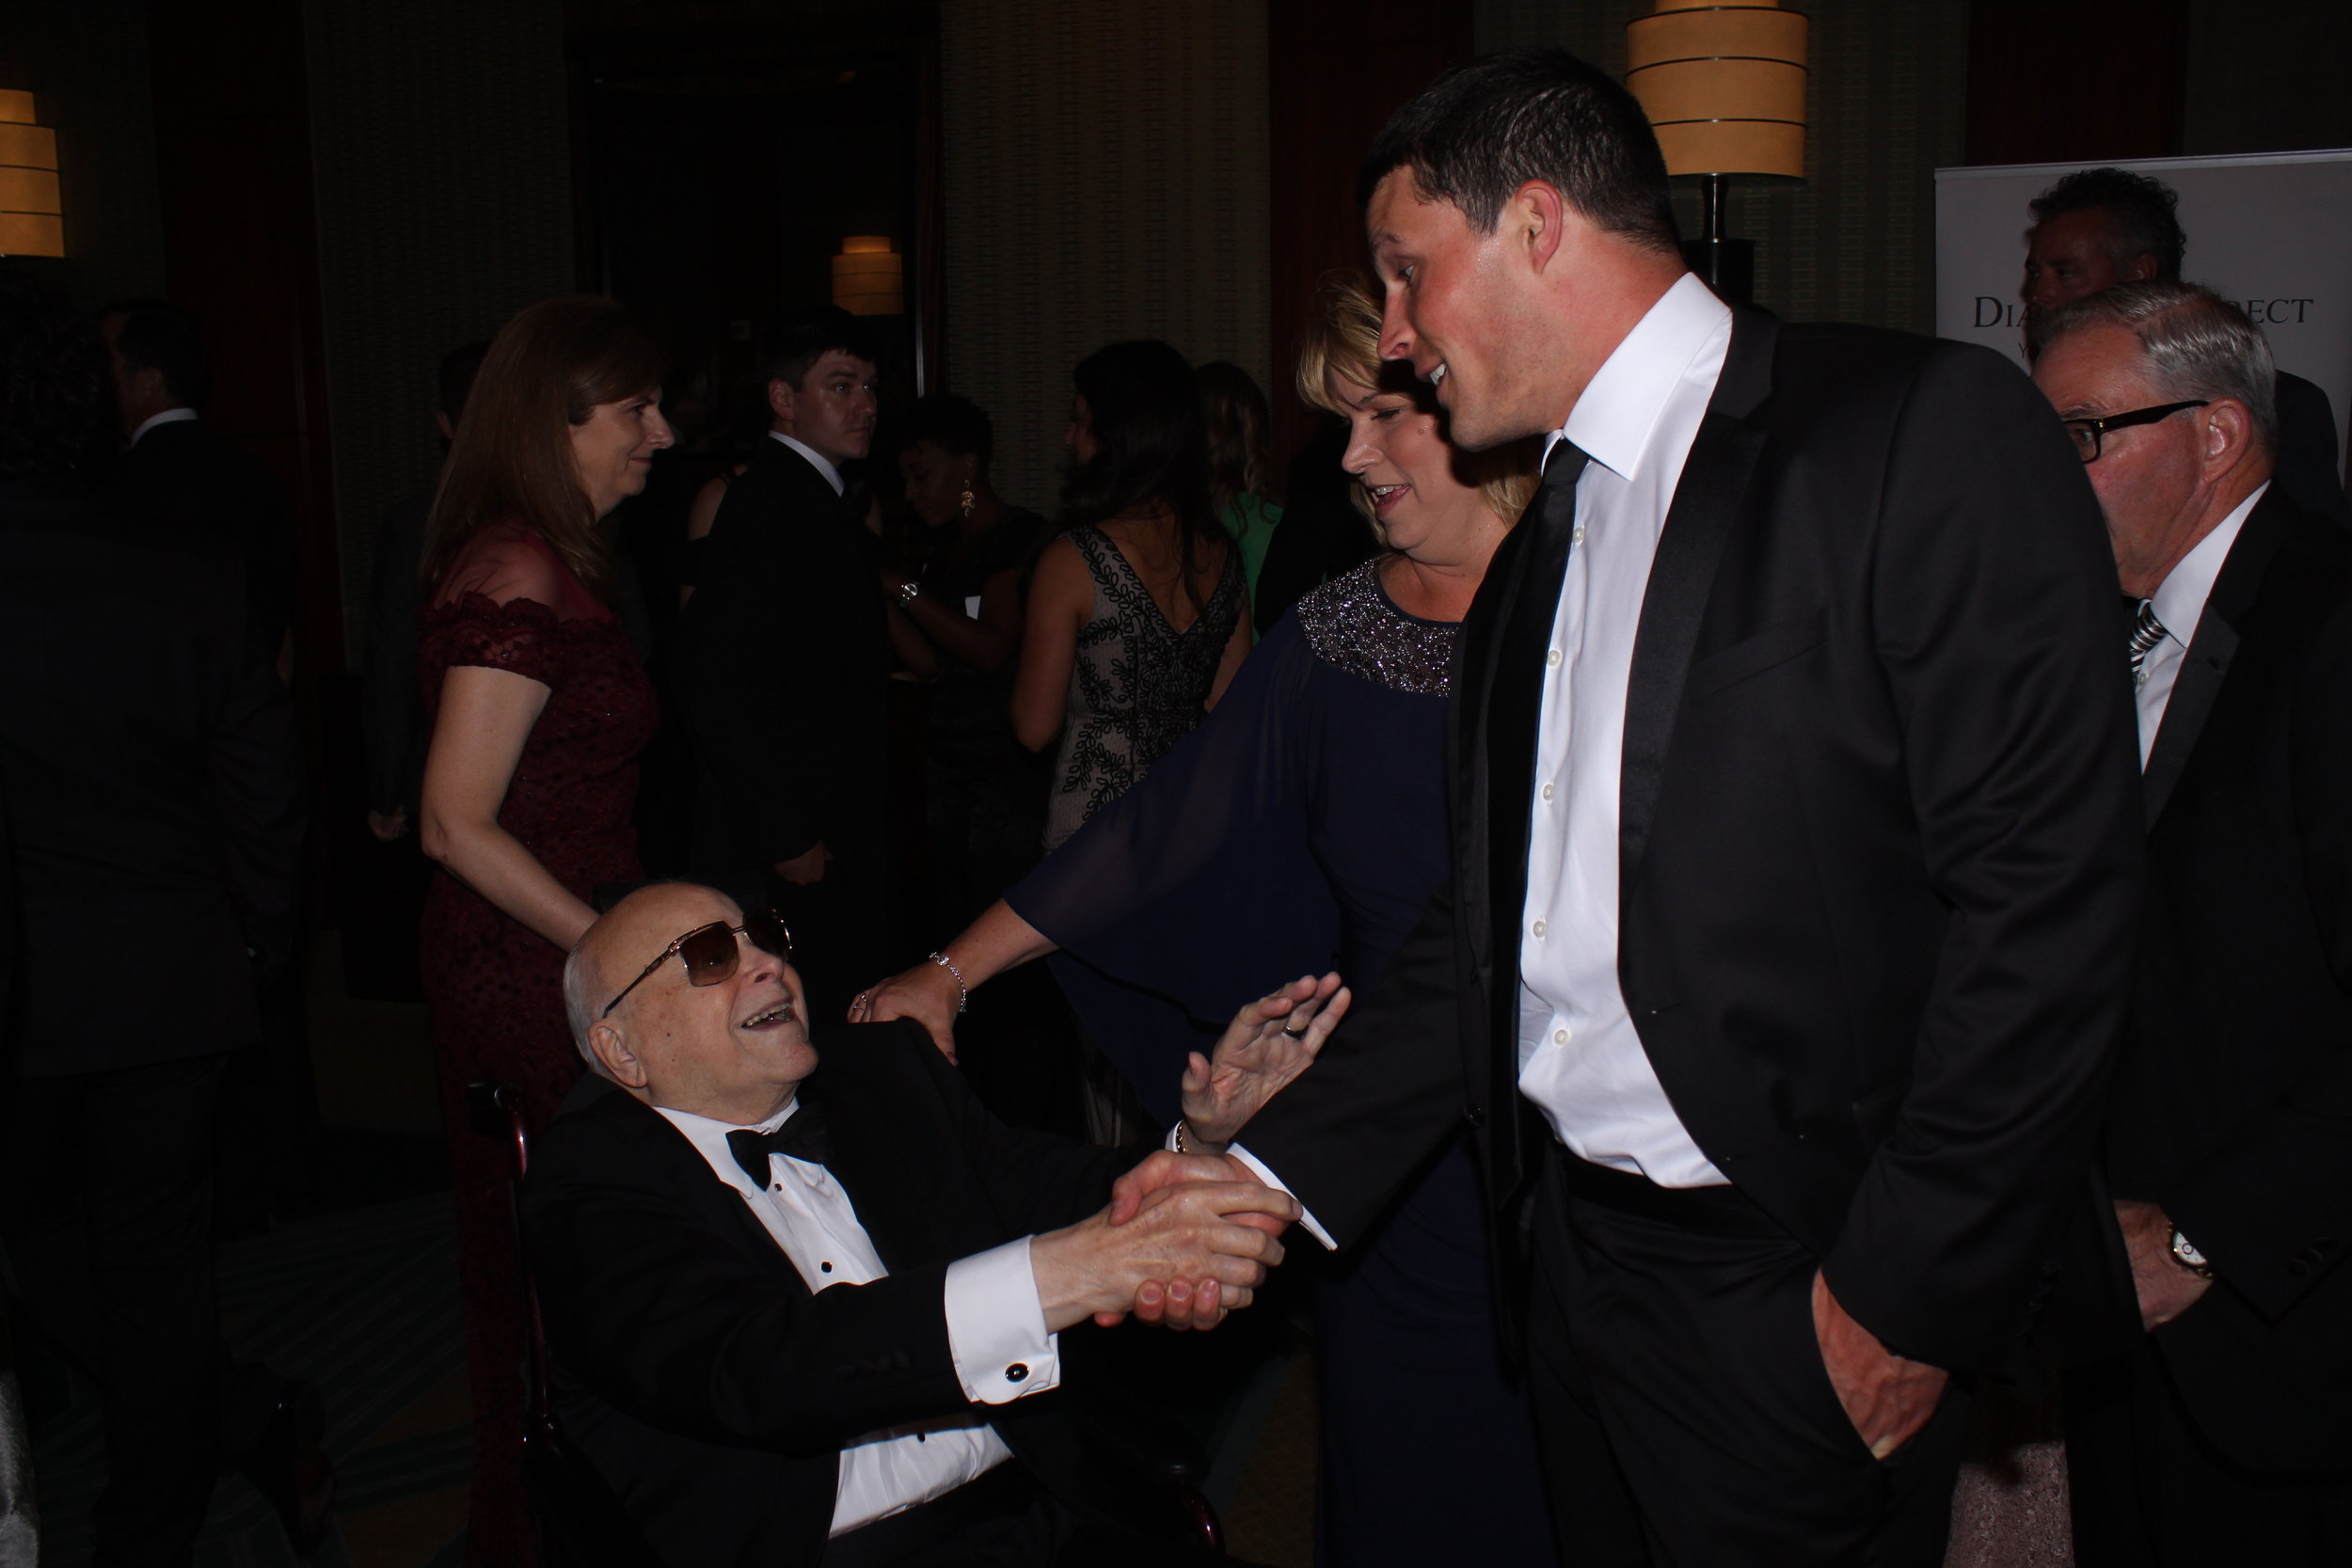 Speedway Children's Charities Founder Bruton Smith greets Carolina Panthers player Luke Kuechly.